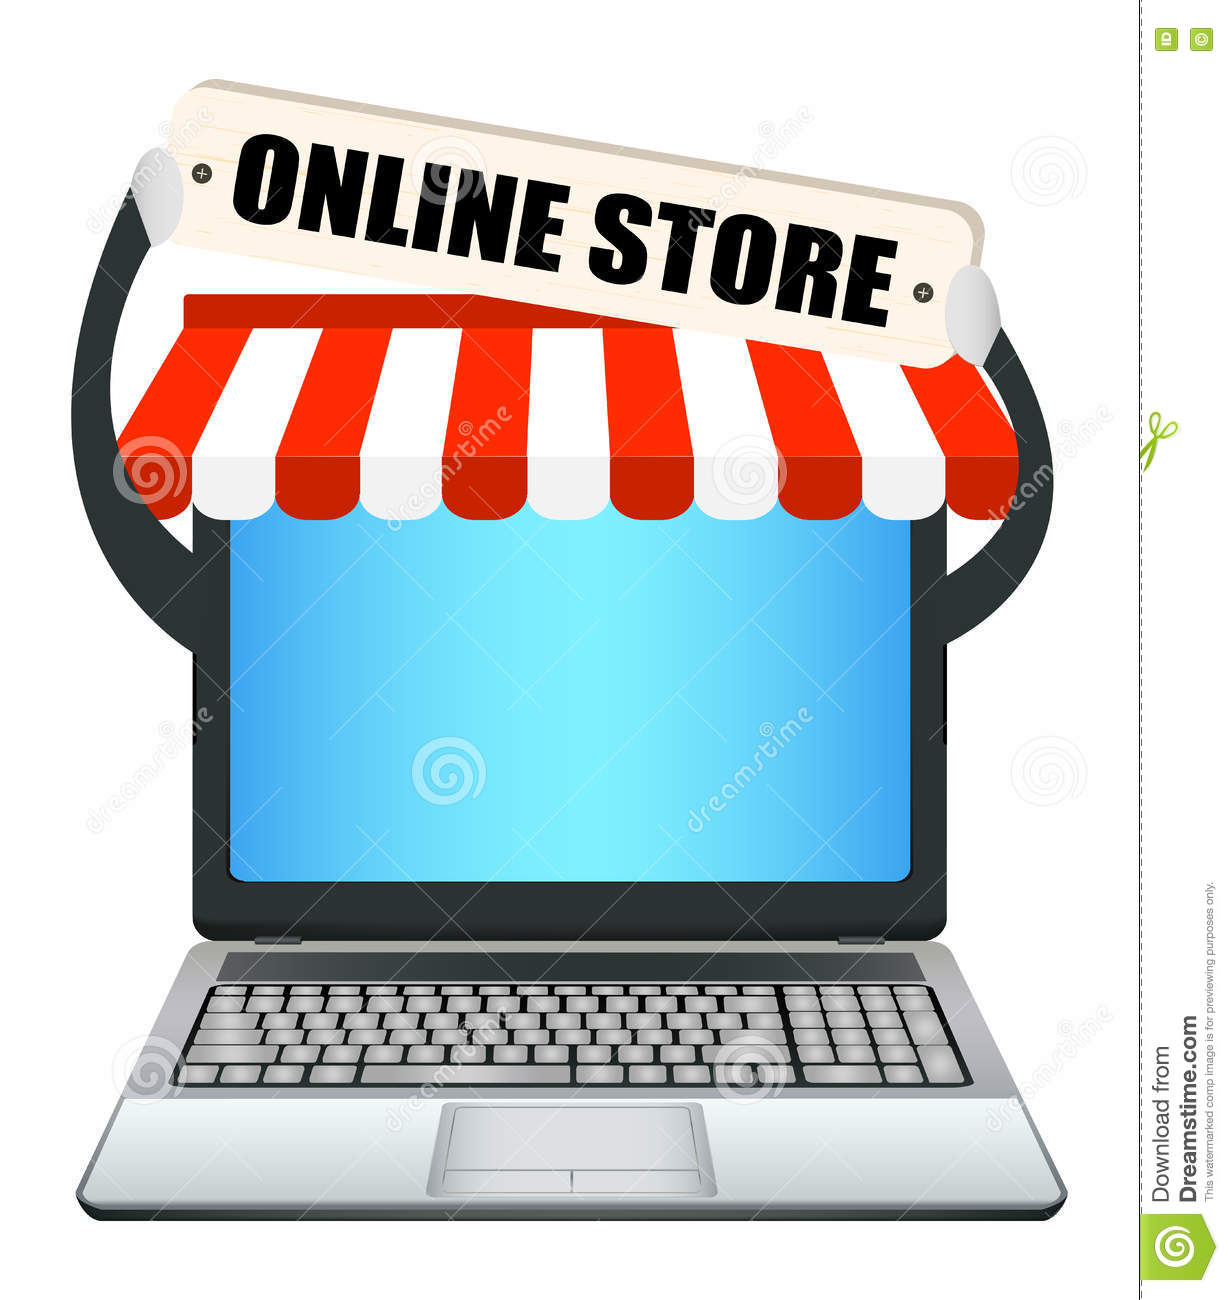 Online store clipart 1 » Clipart Station.